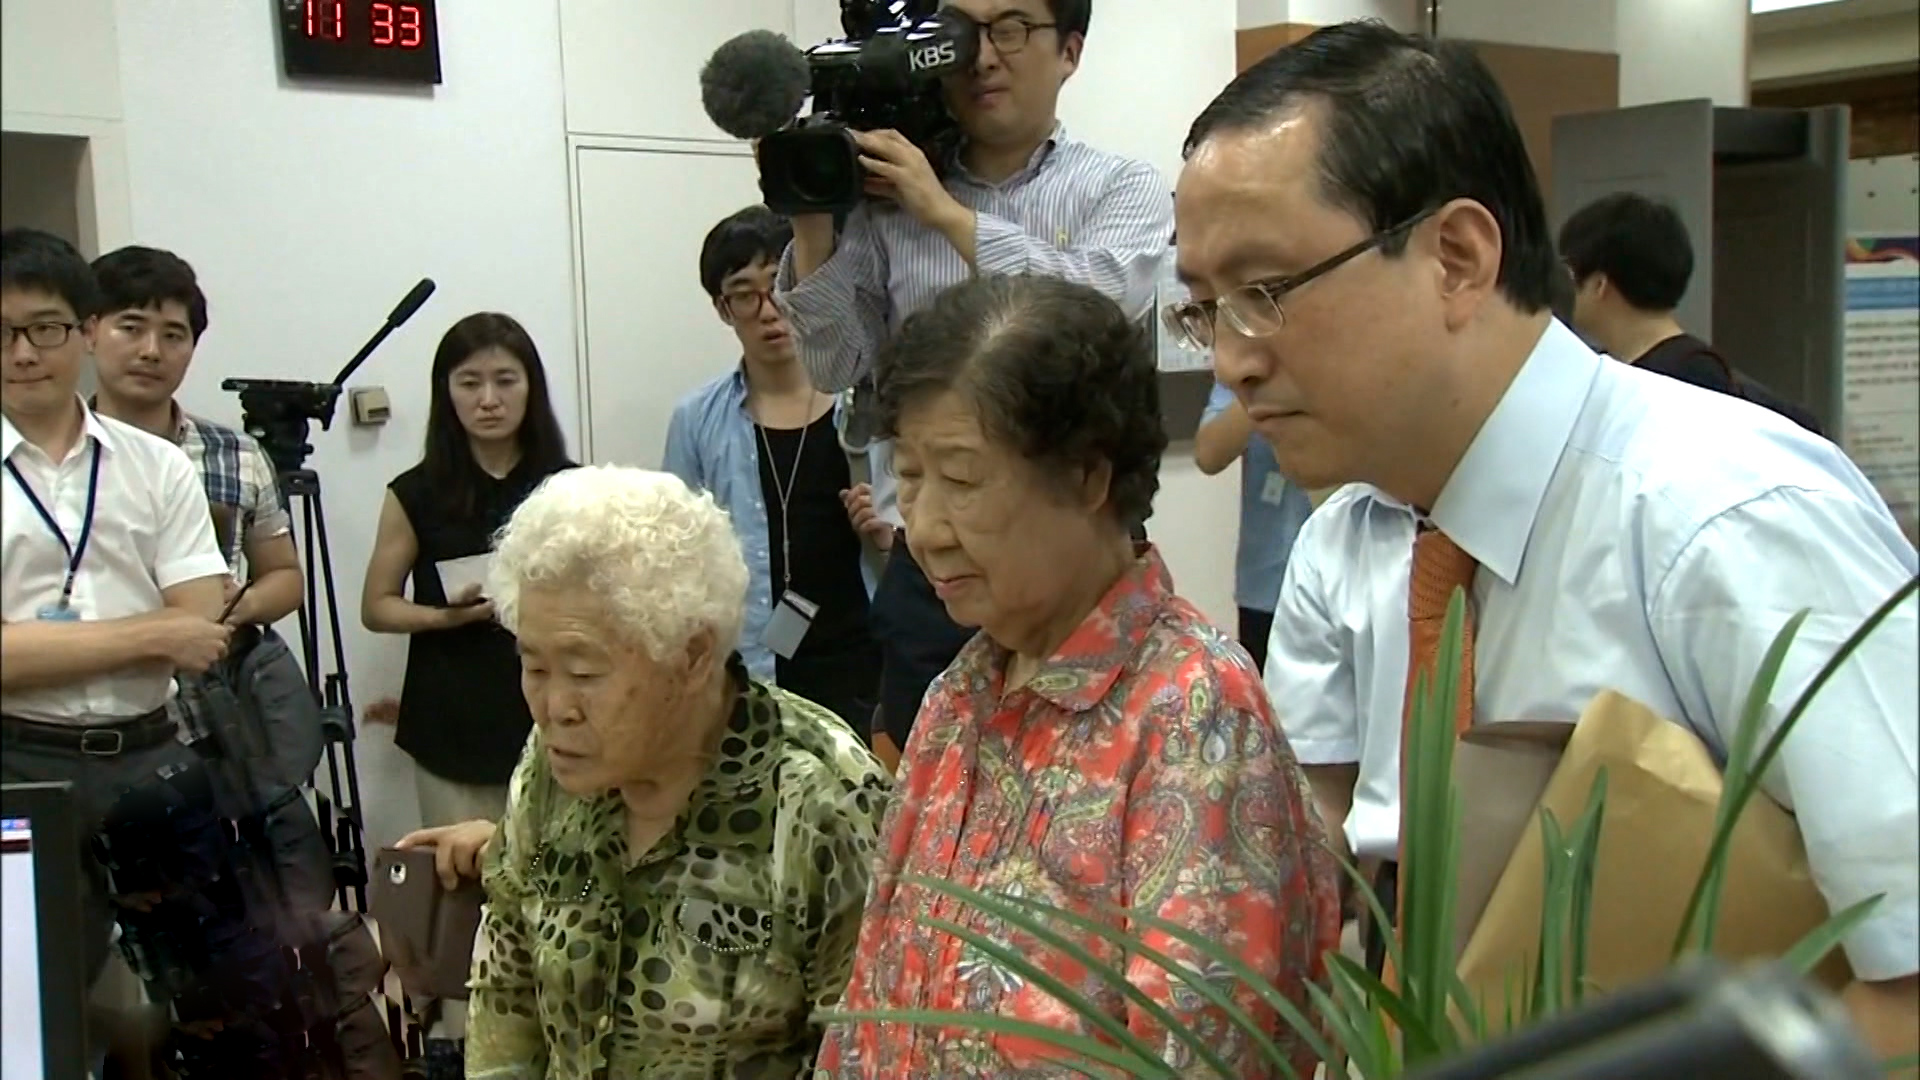 Seoul court order to compensate victims of Japan's 'comfort women' system finalized; Japan reacts